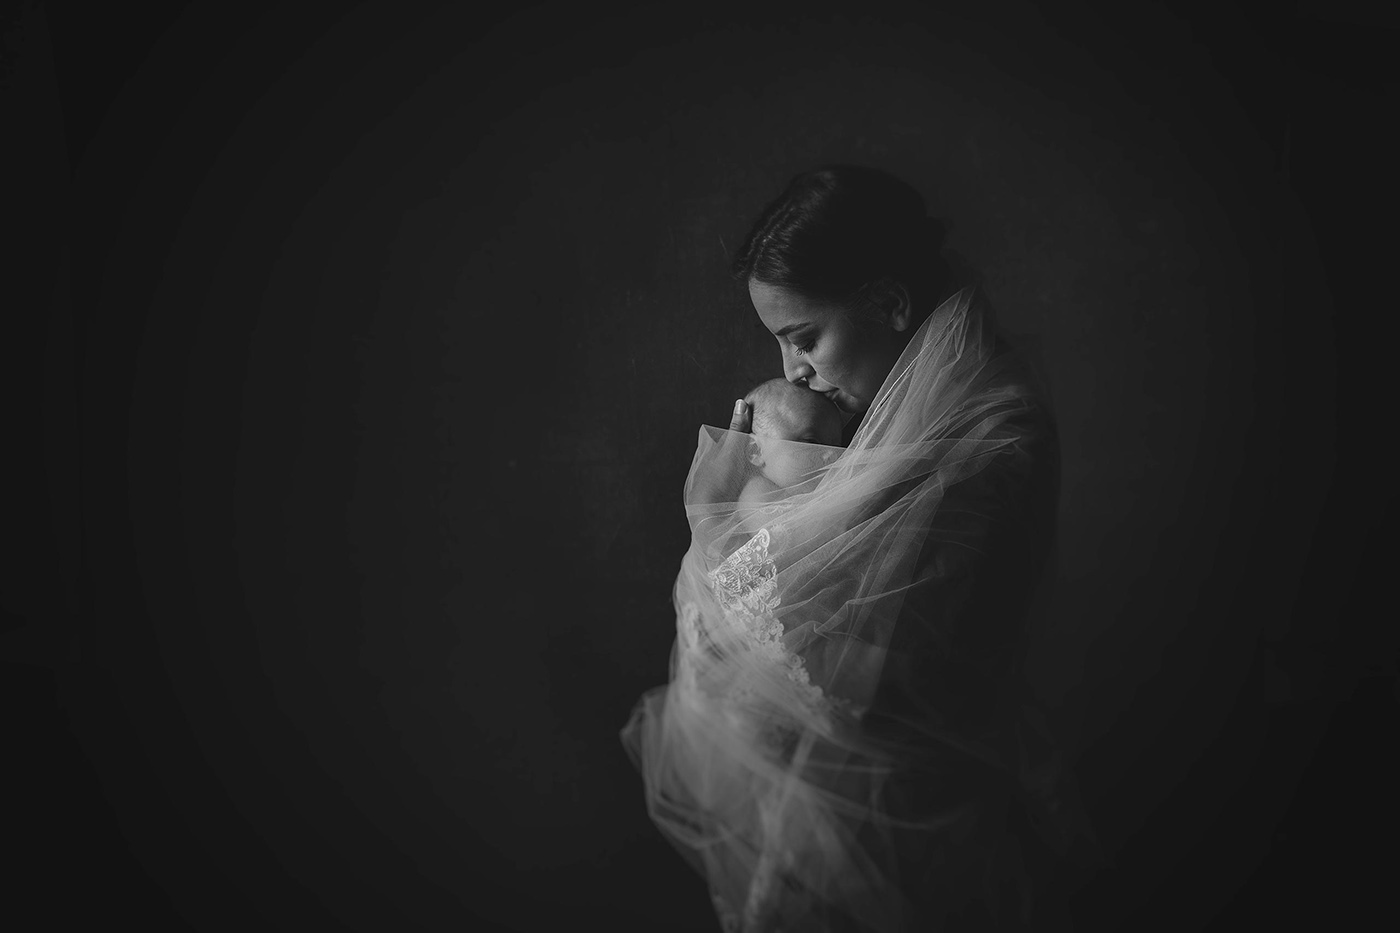 an artistic balck and white portrait of mother and newborn baby